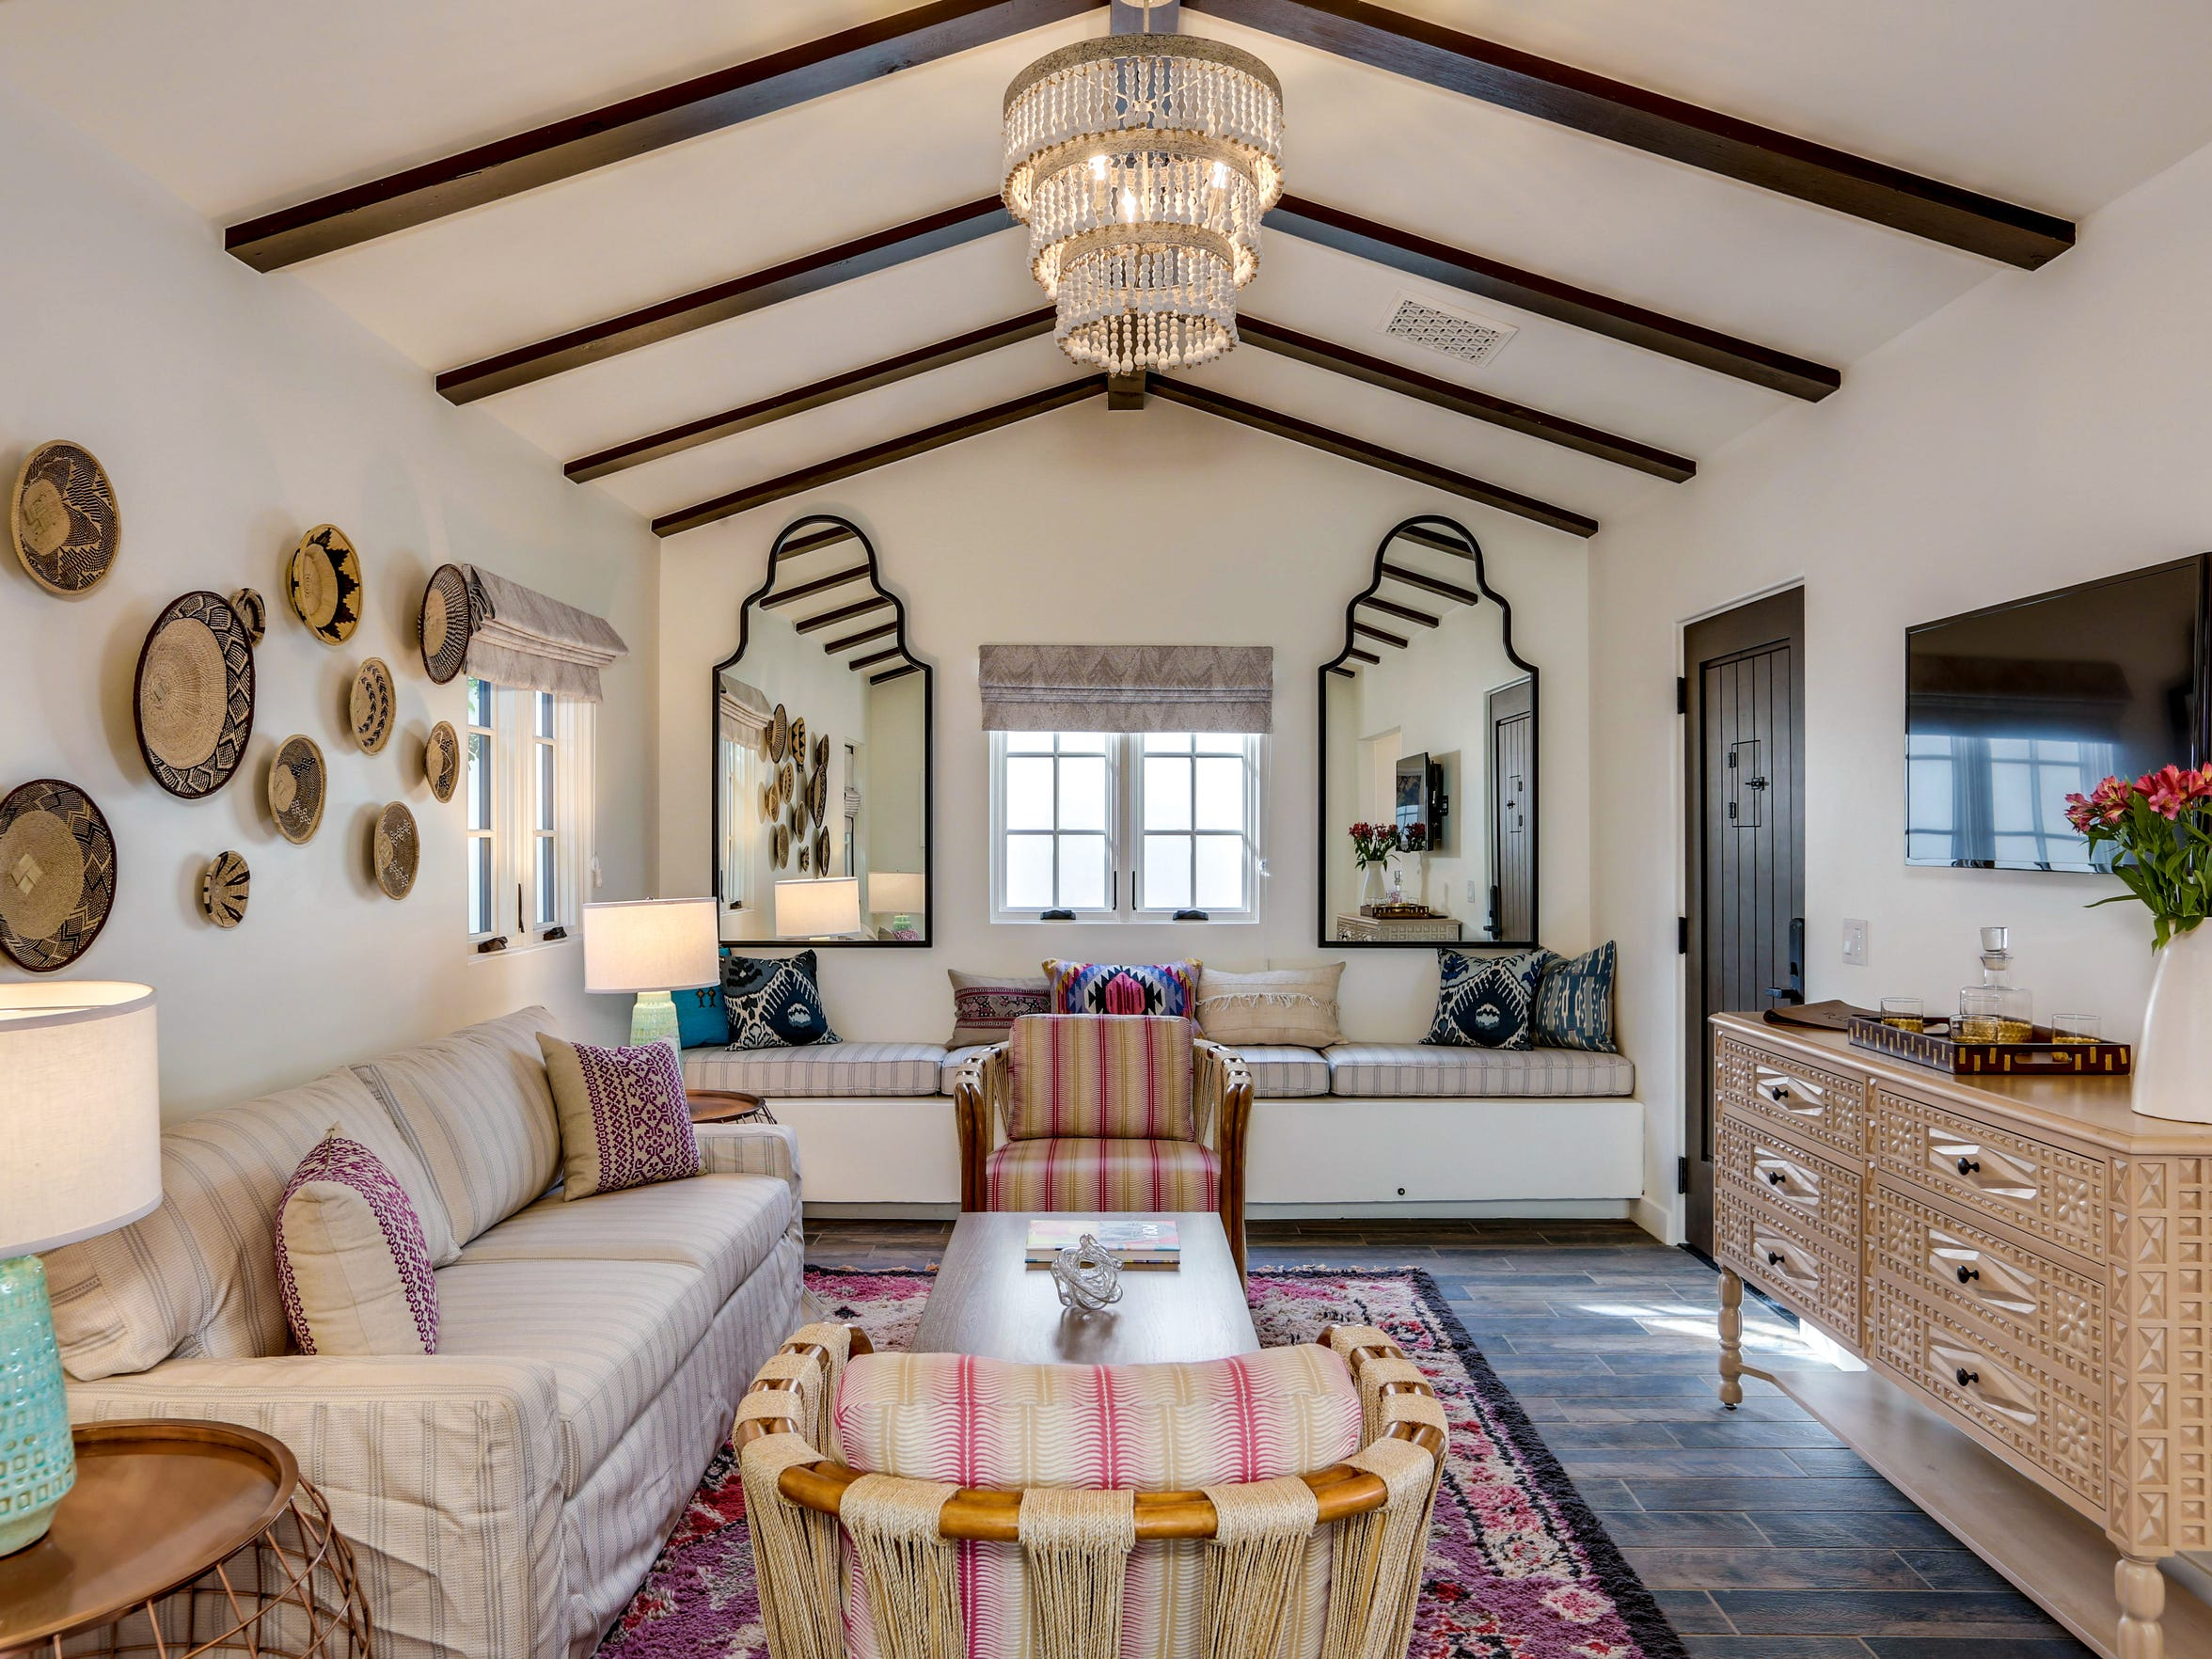 This La Serena Villas living room makes us want to